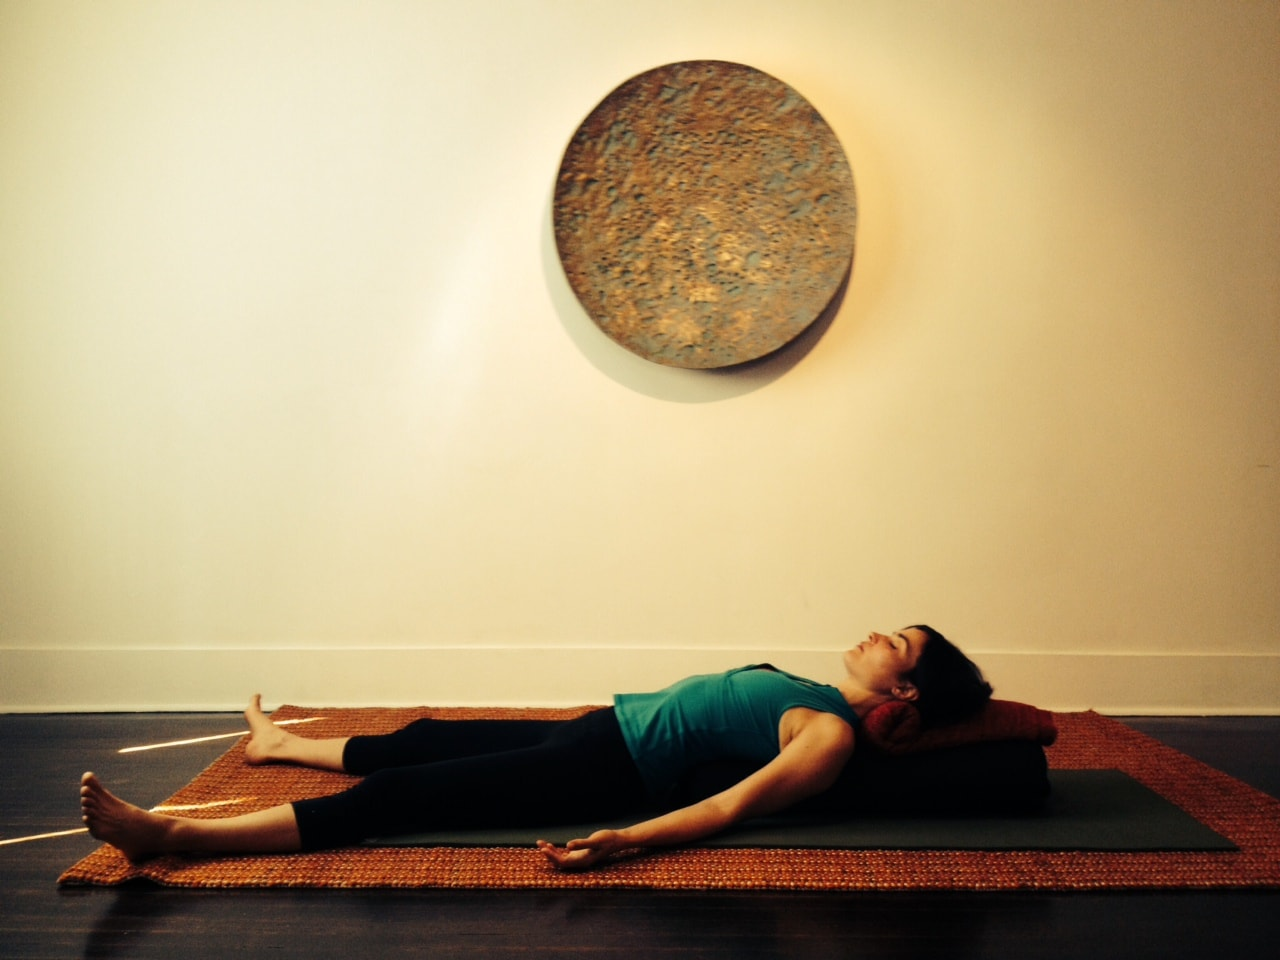 Are you sitting in front of a computer all day? Five yoga postures that can help